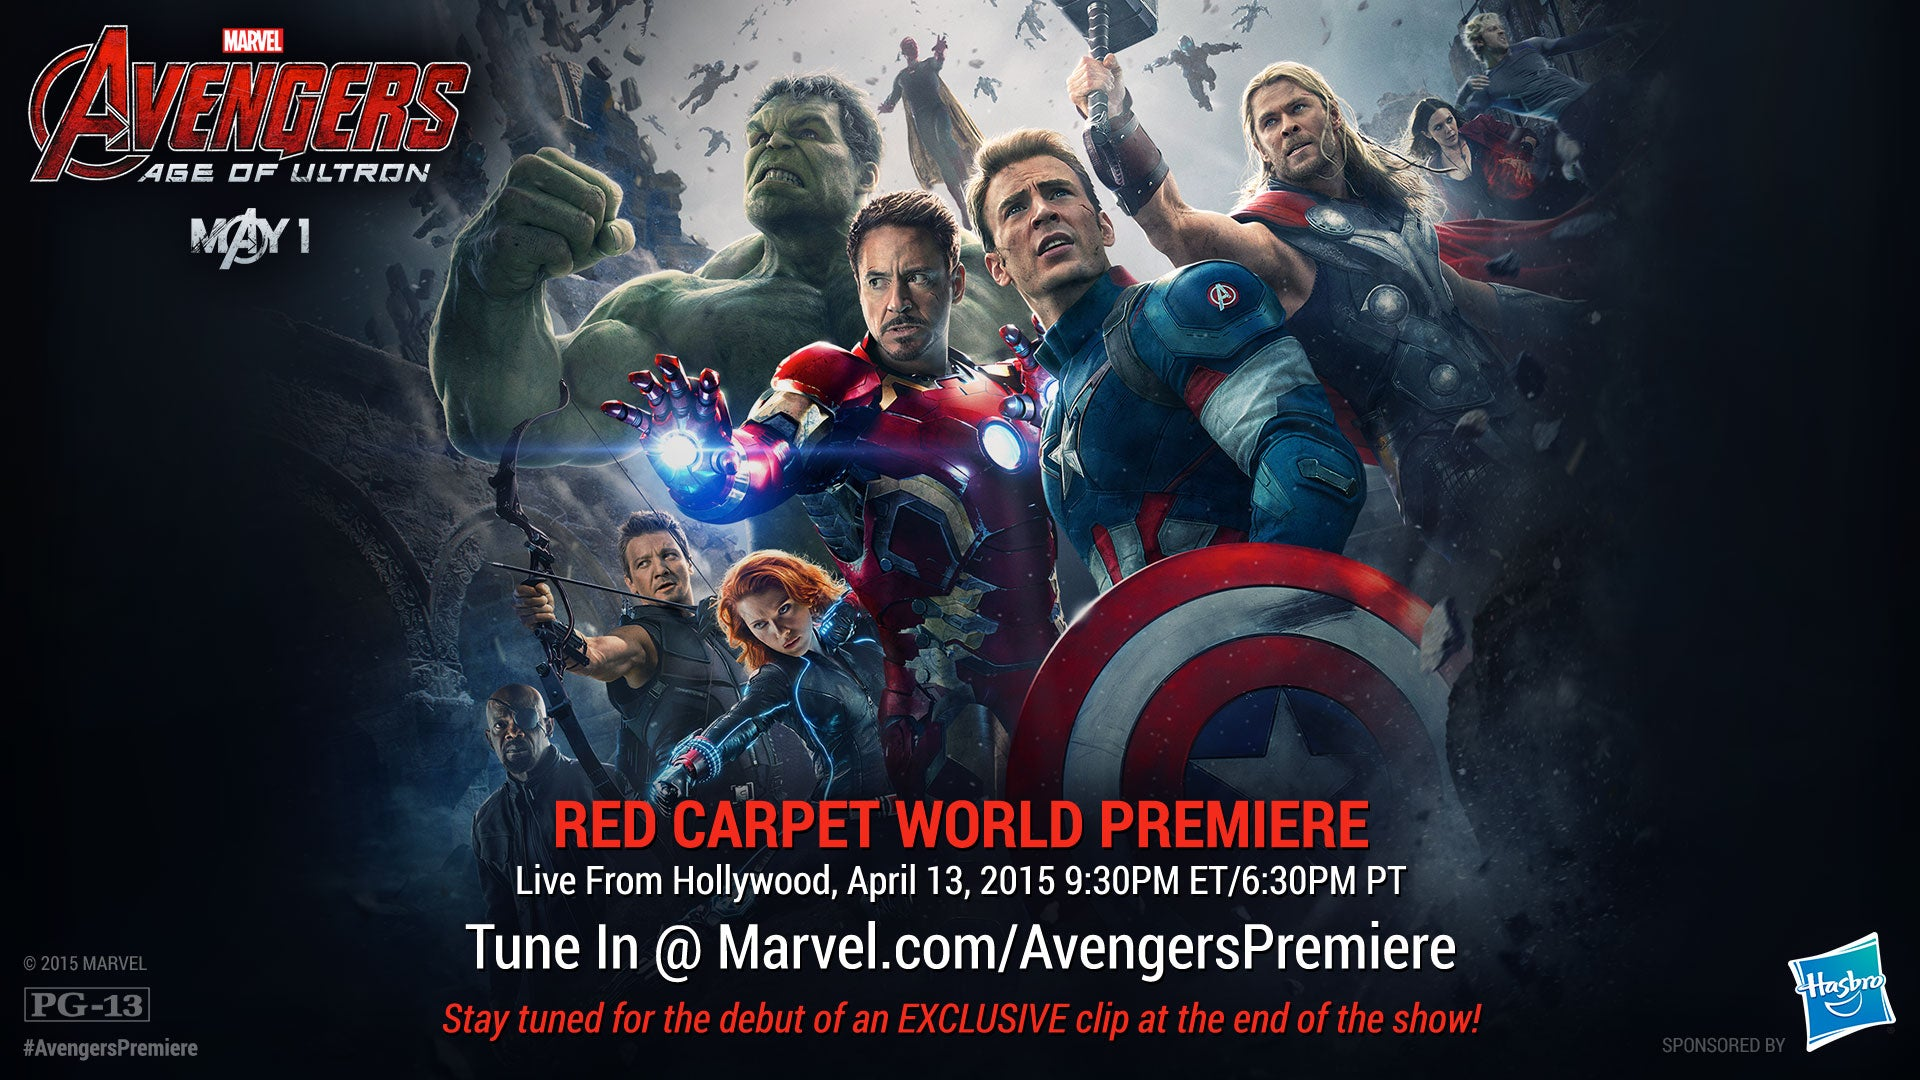 Avengers: Age Of Ultron Red Carpet Premiere To Be Broadcast Online